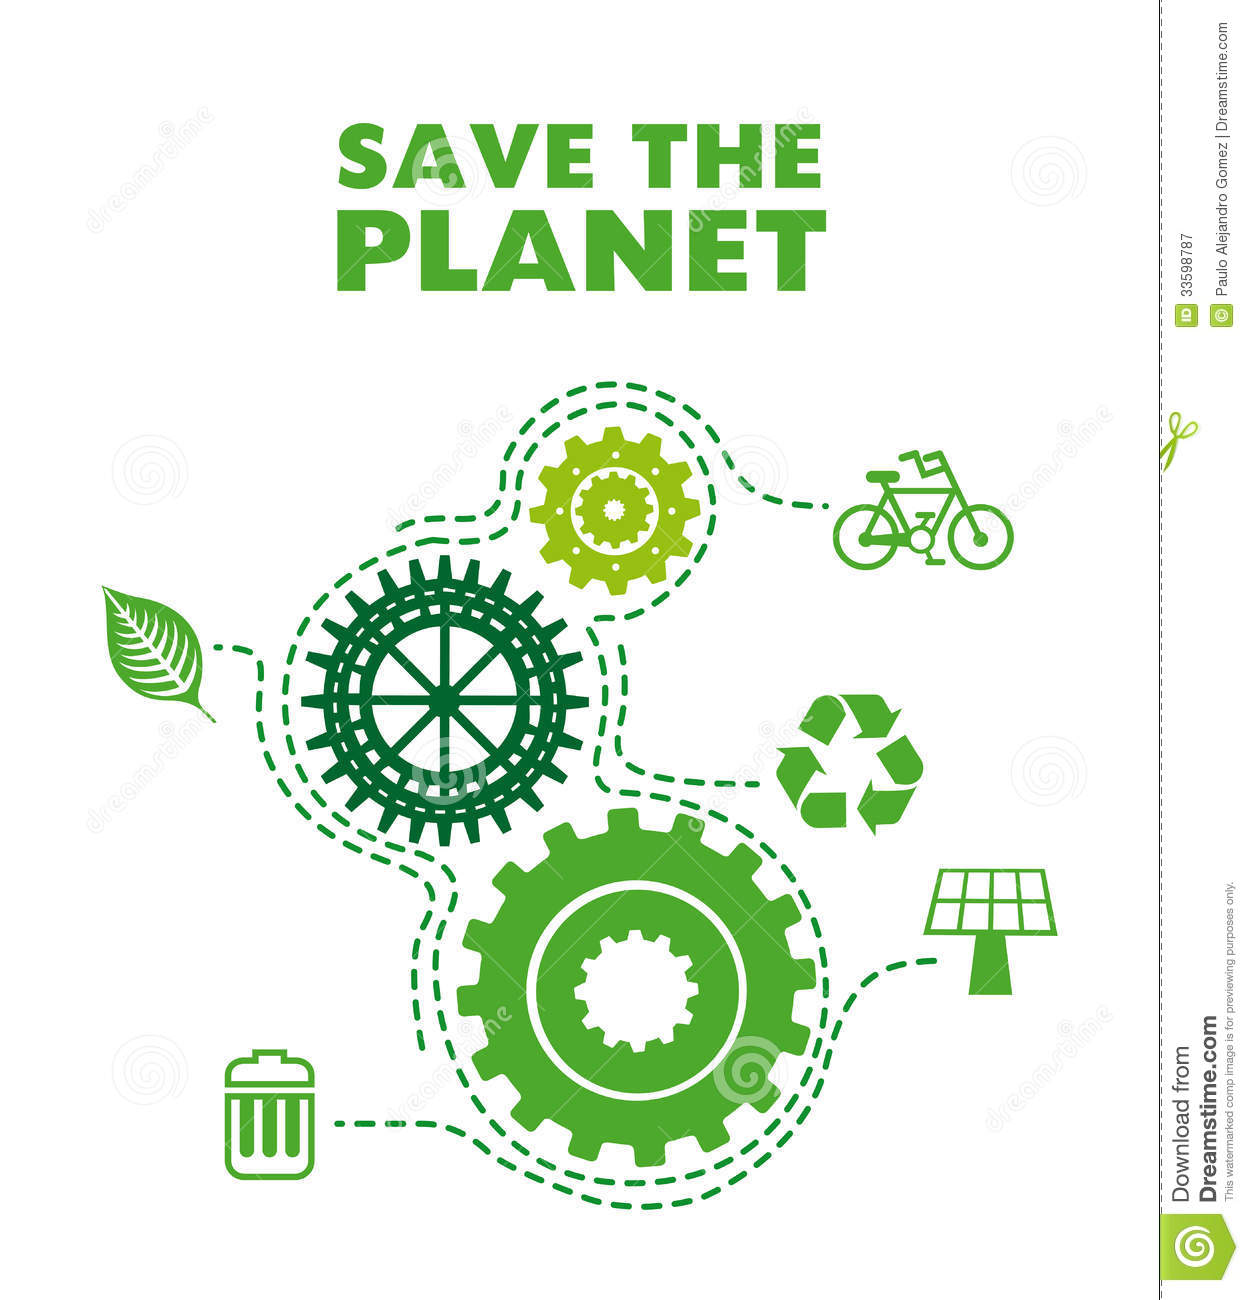 Save The Planet Royalty Free Stock Photography Image